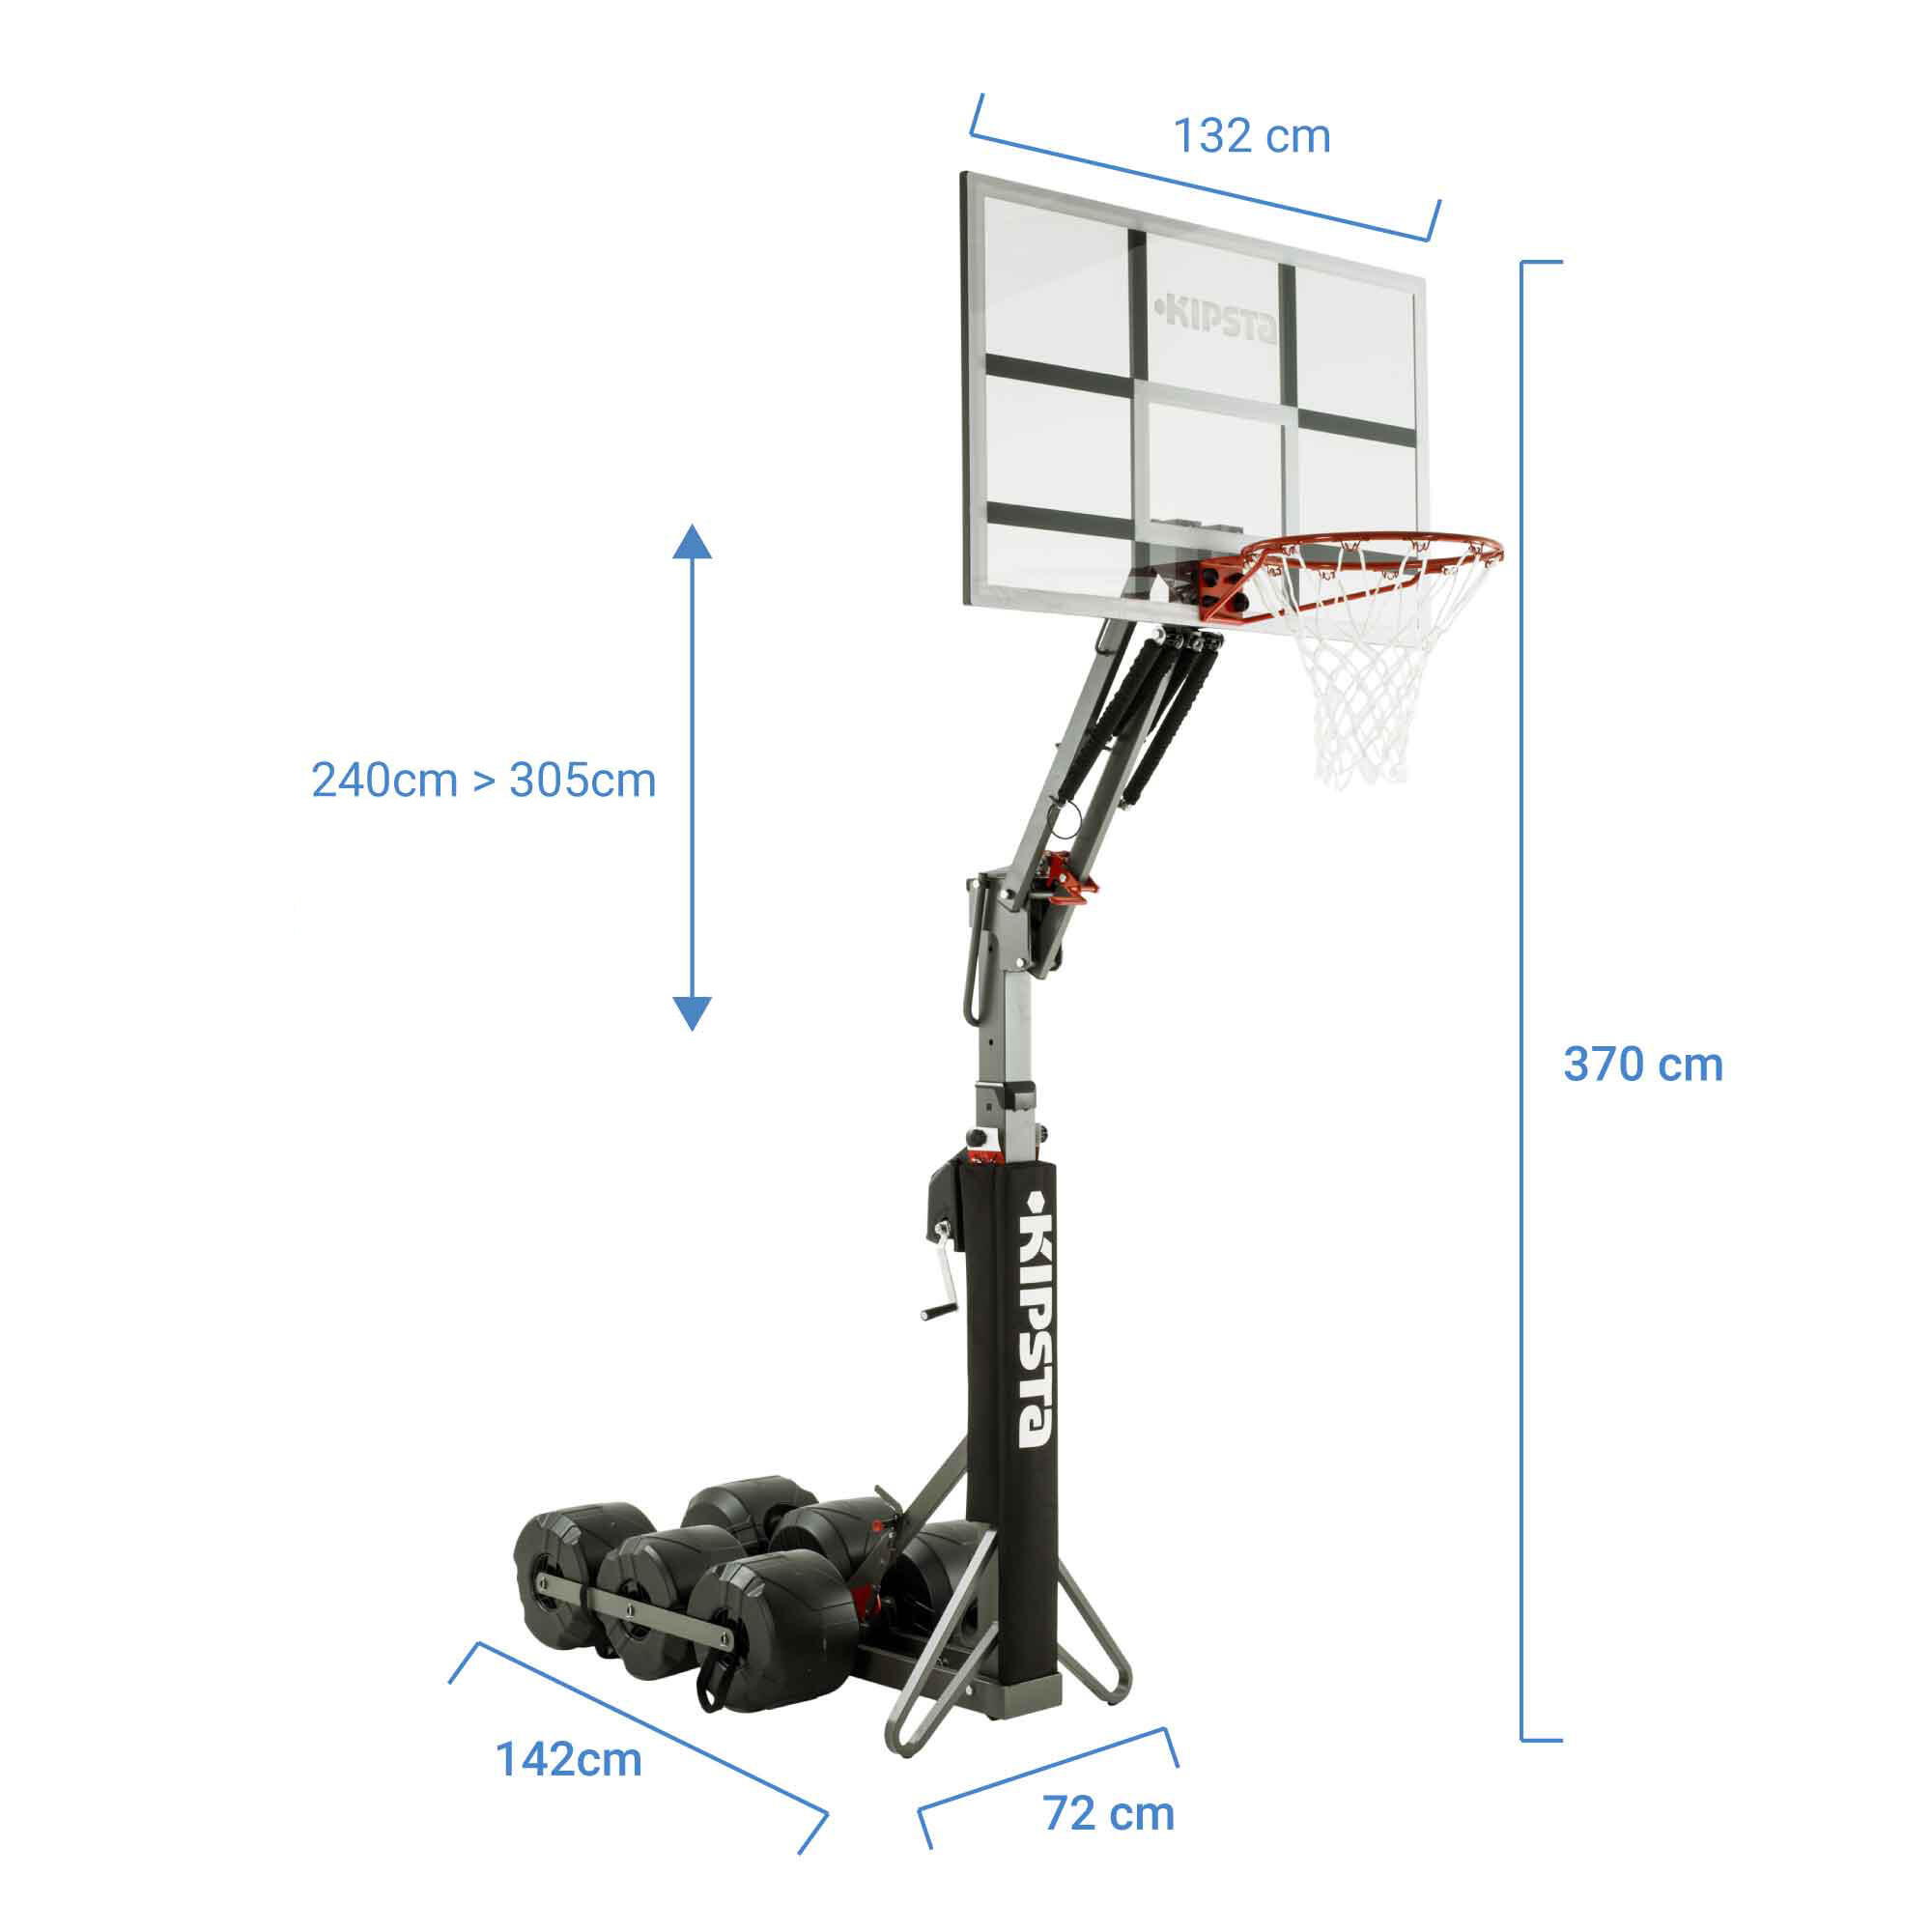 B900 Kids'/Adults' Basketball Hoop 2.4m to 3.05m.Sets up and stores in 2 minutes